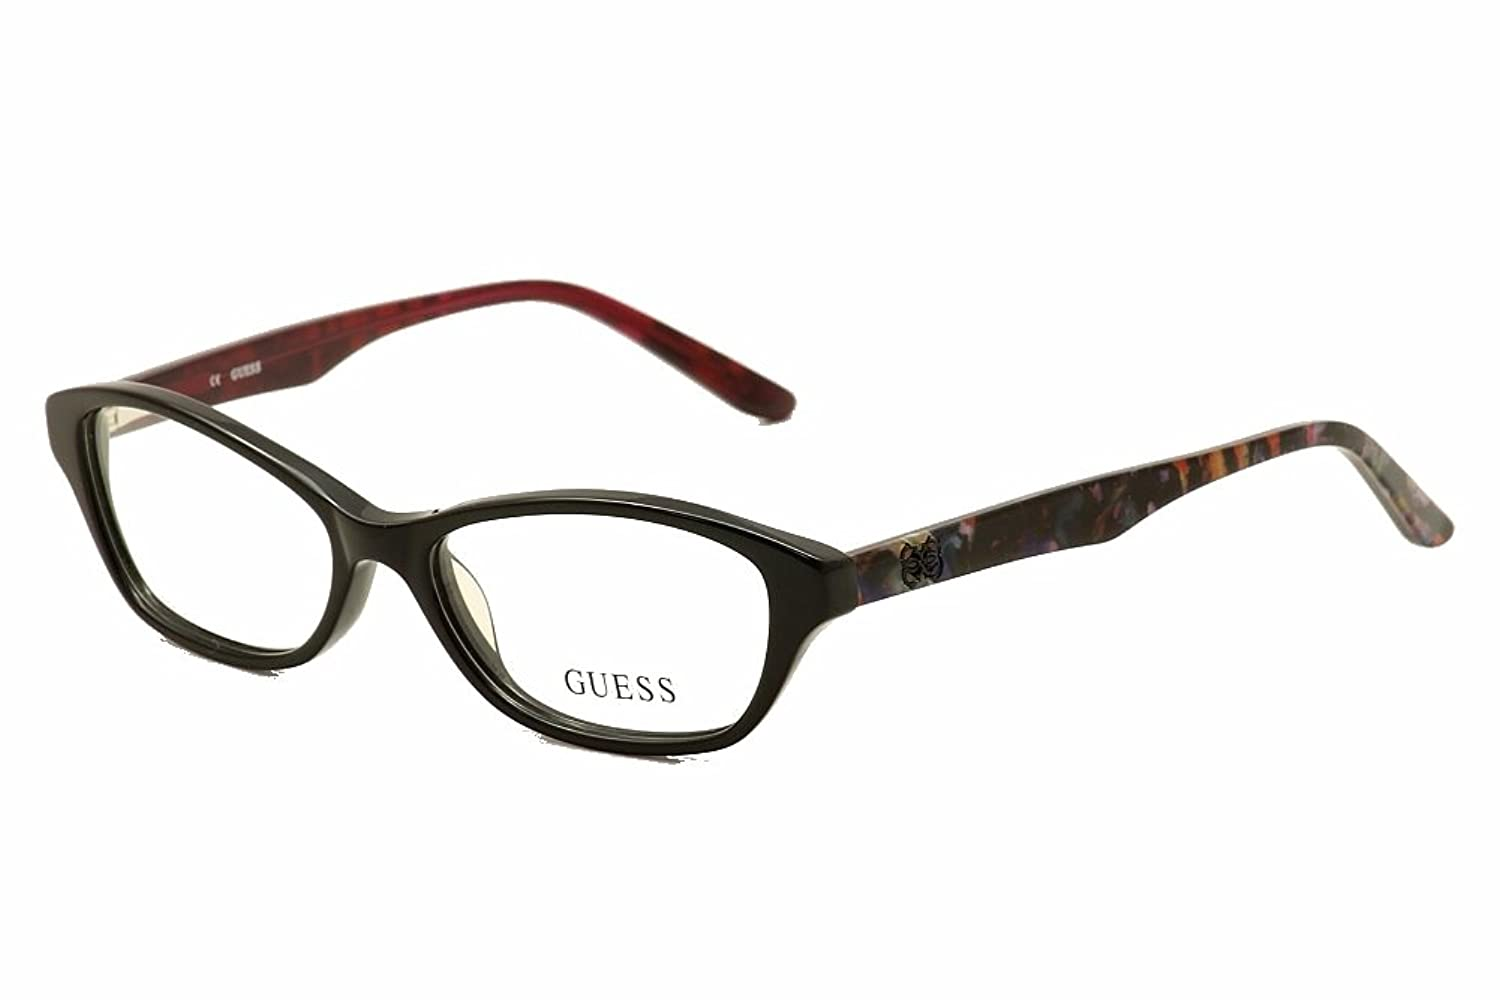 Amazon.com: GUESS Eyeglasses GU 2417 Black 52MM: Clothing